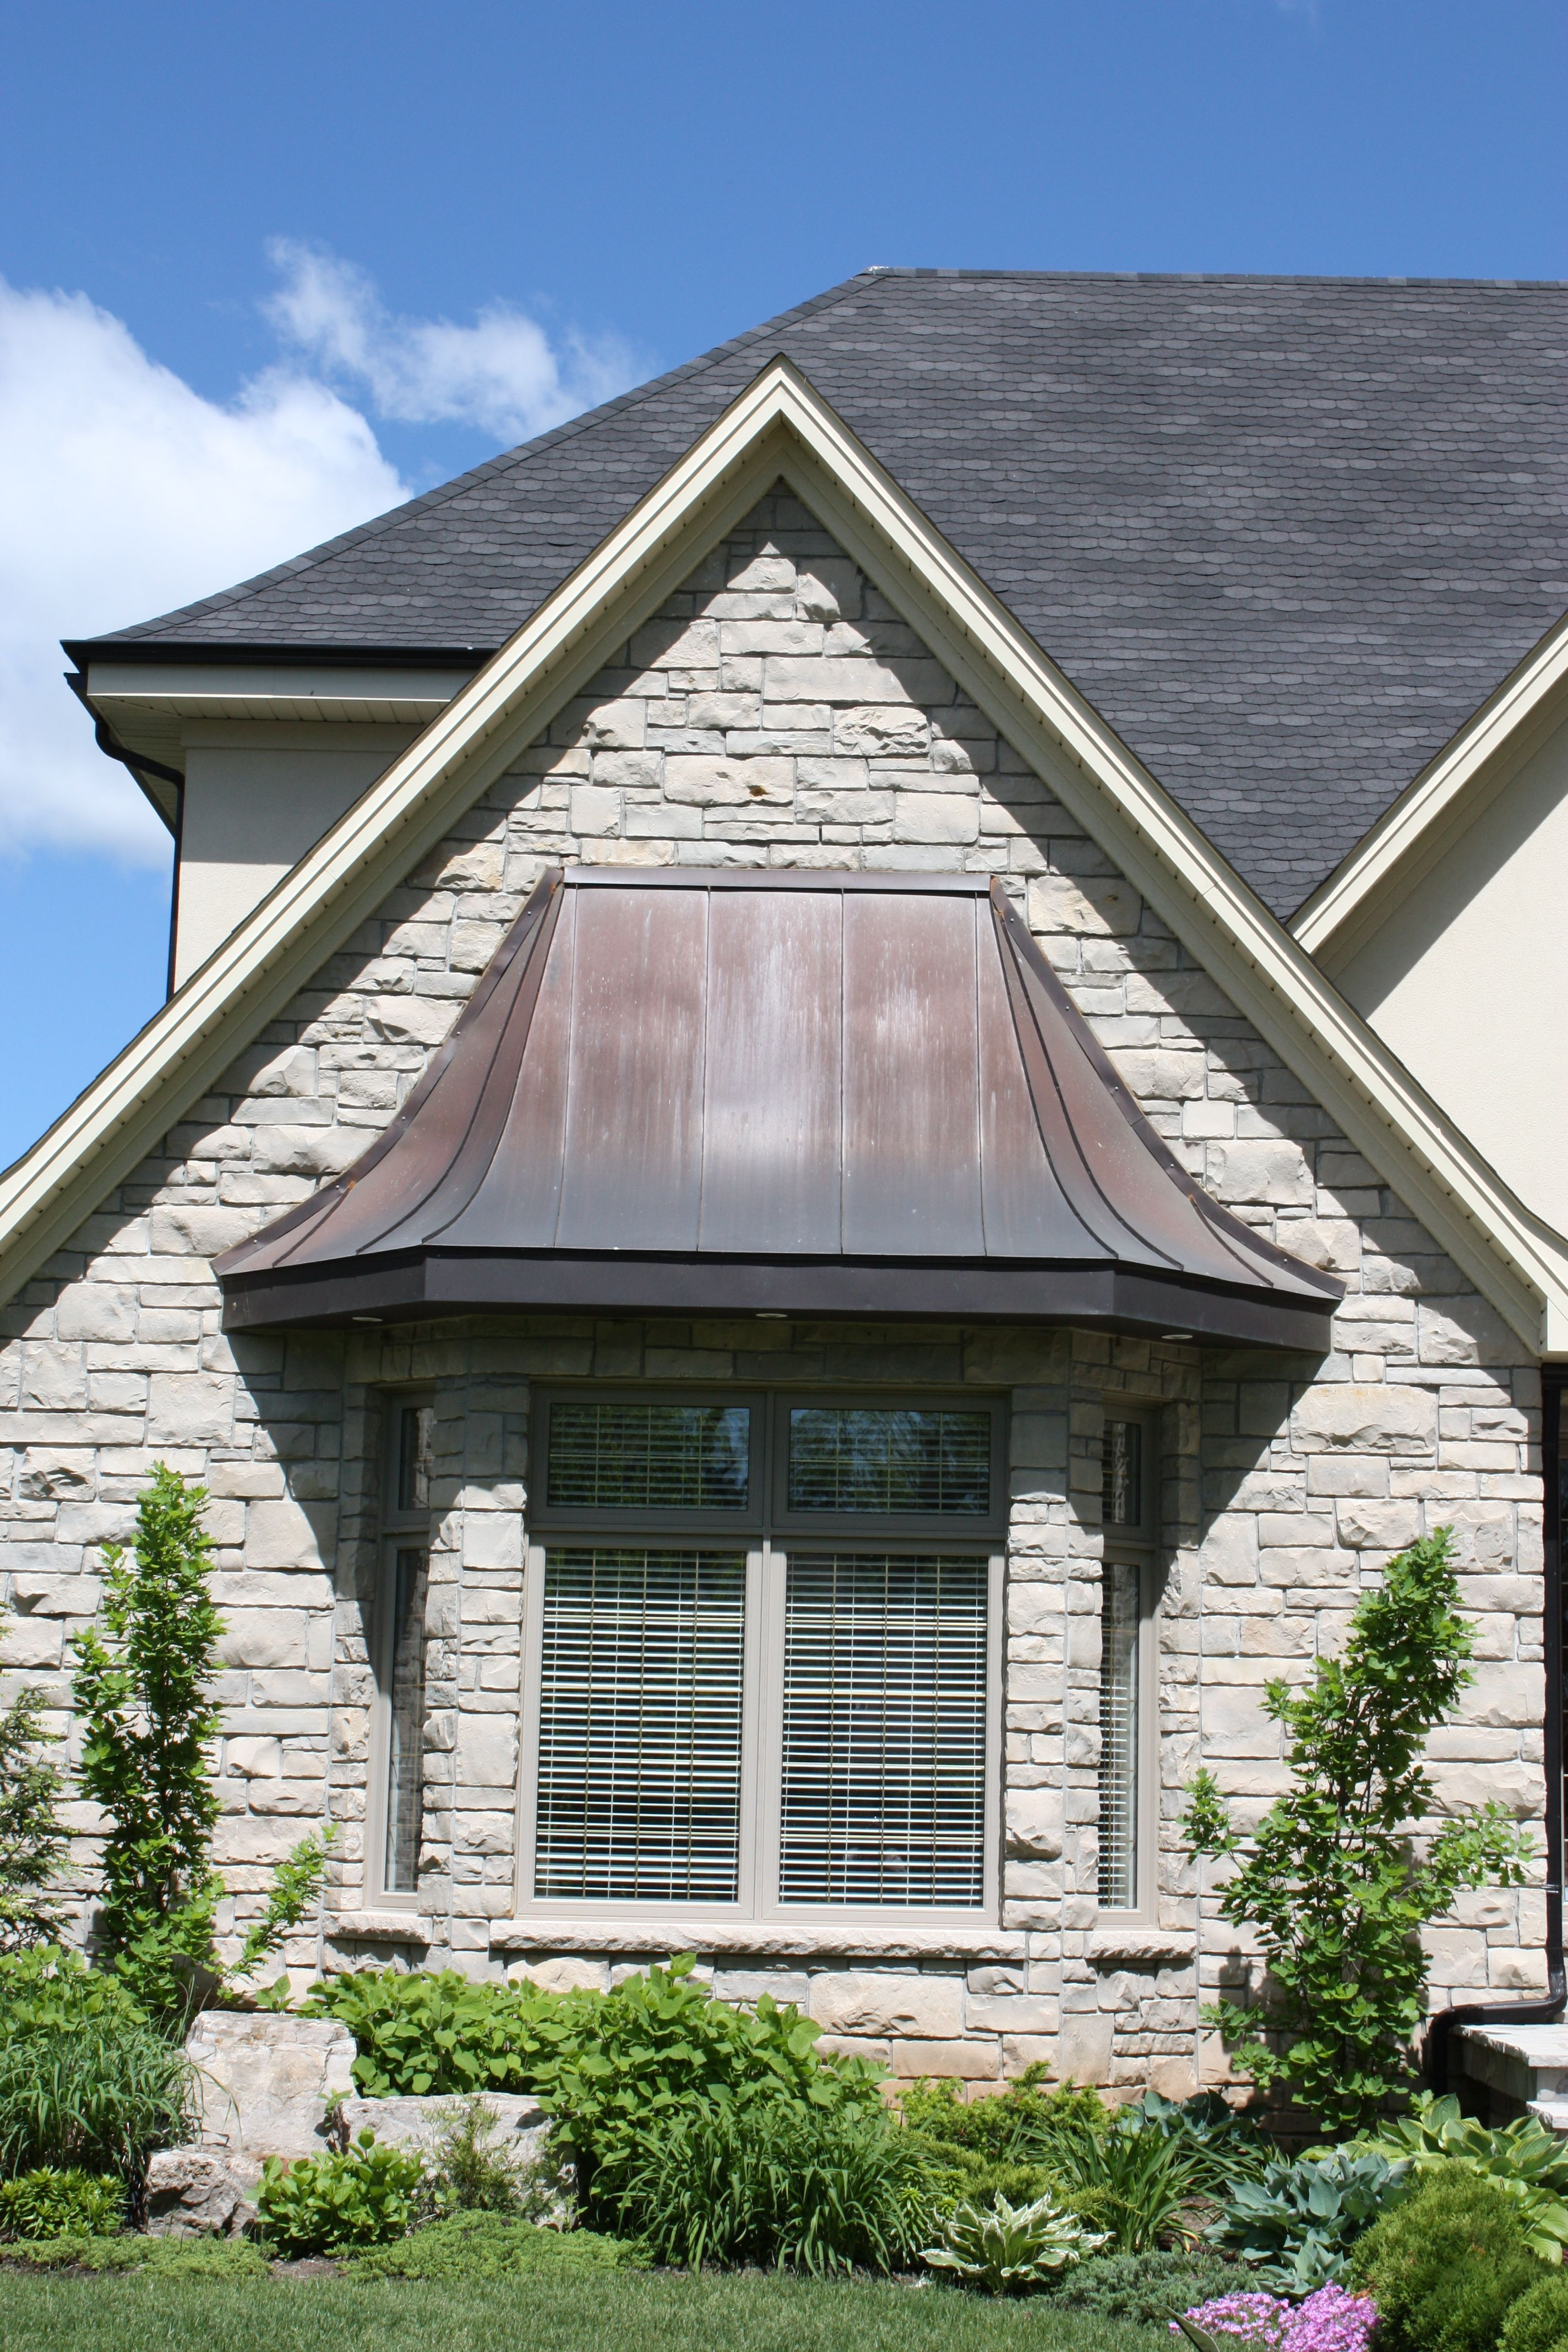 Bellcast Roof & Roof Styles